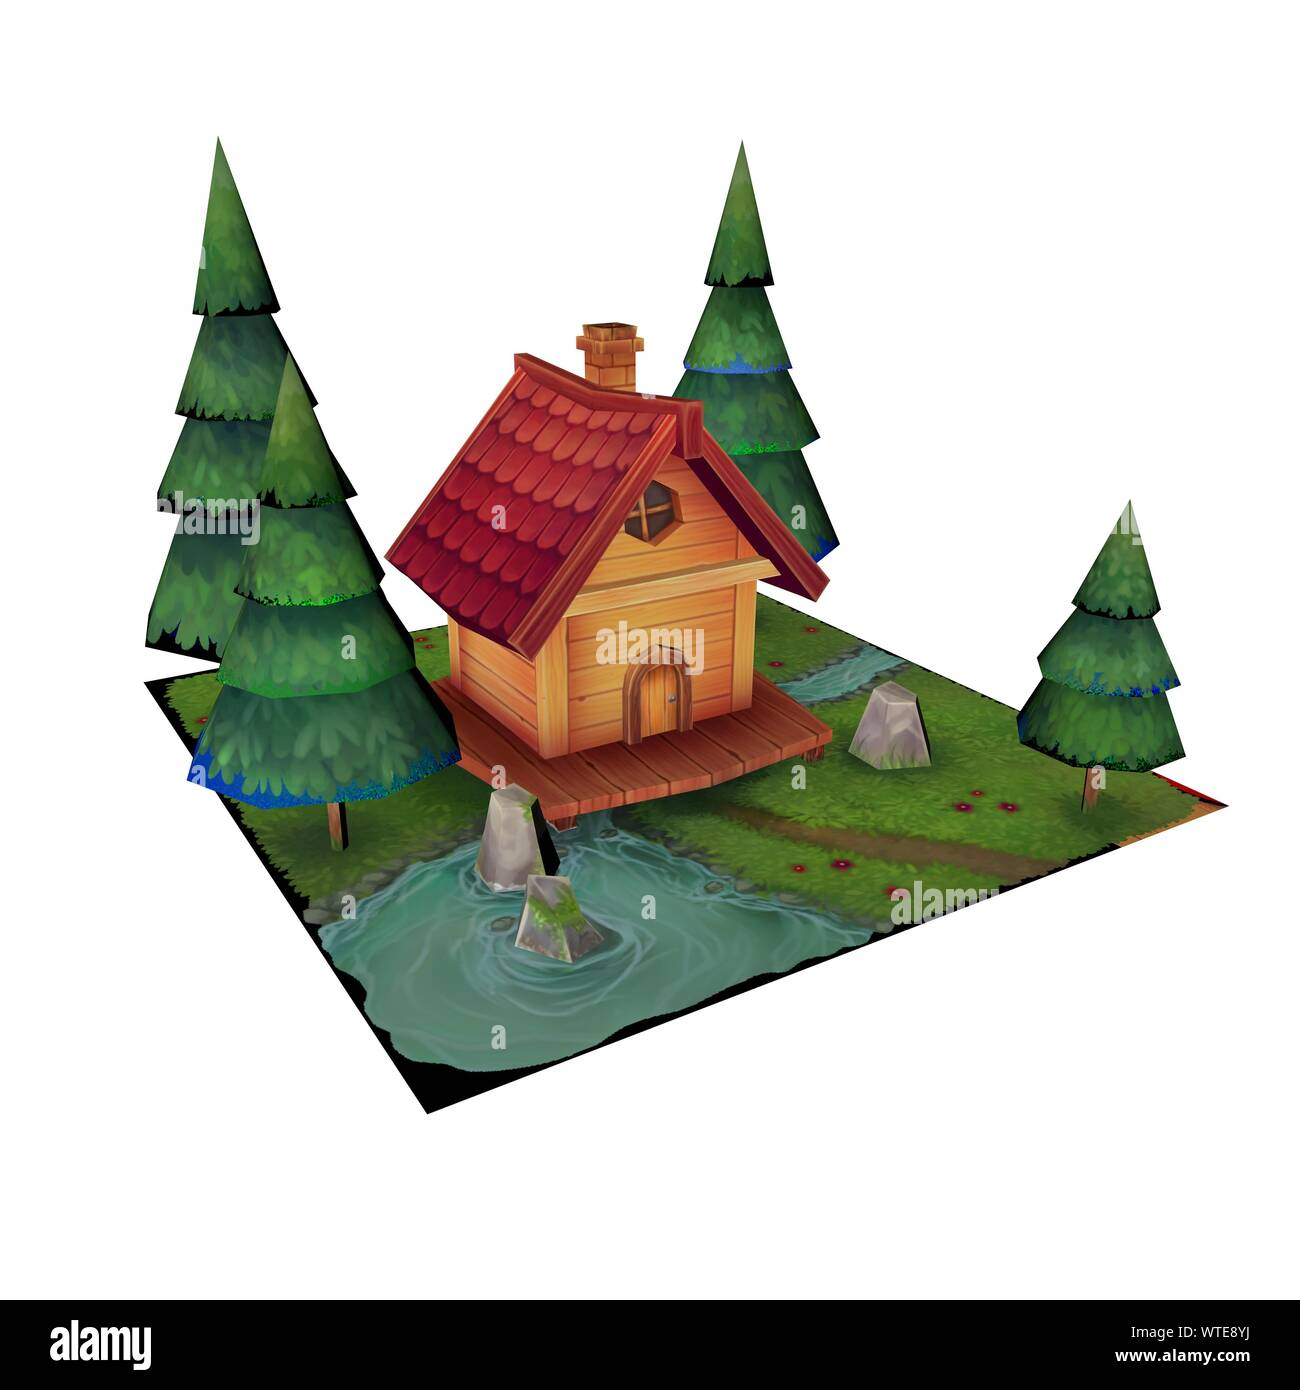 3d Render Of A House Home And Lawn With Surrounding Trees Kids And Cartoon Style Dreamy House 3d Illustration On A 4k White Background Stock Photo Alamy Tga, psd free download this 3d objects and put it into your scene. https www alamy com 3d render of a house home and lawn with surrounding trees kids and cartoon style dreamy house 3d illustration on a 4k white background image273221638 html